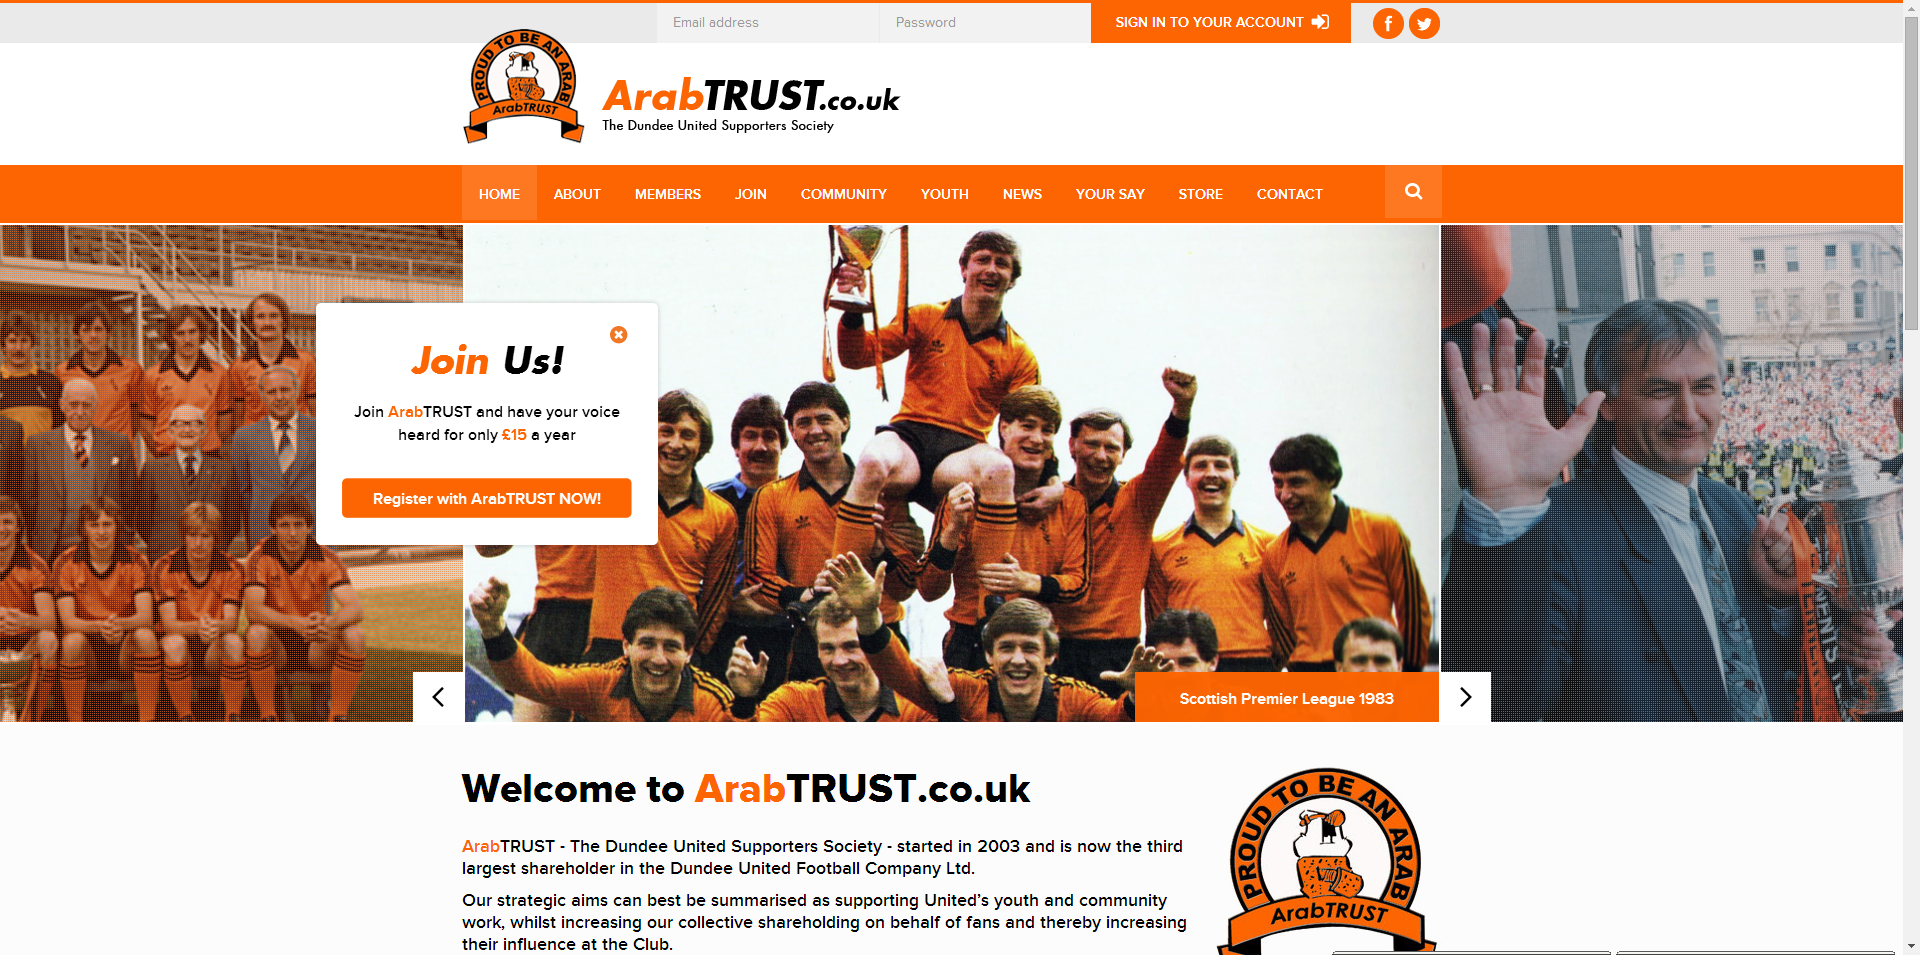 Welcome To The New ArabTRUST Website